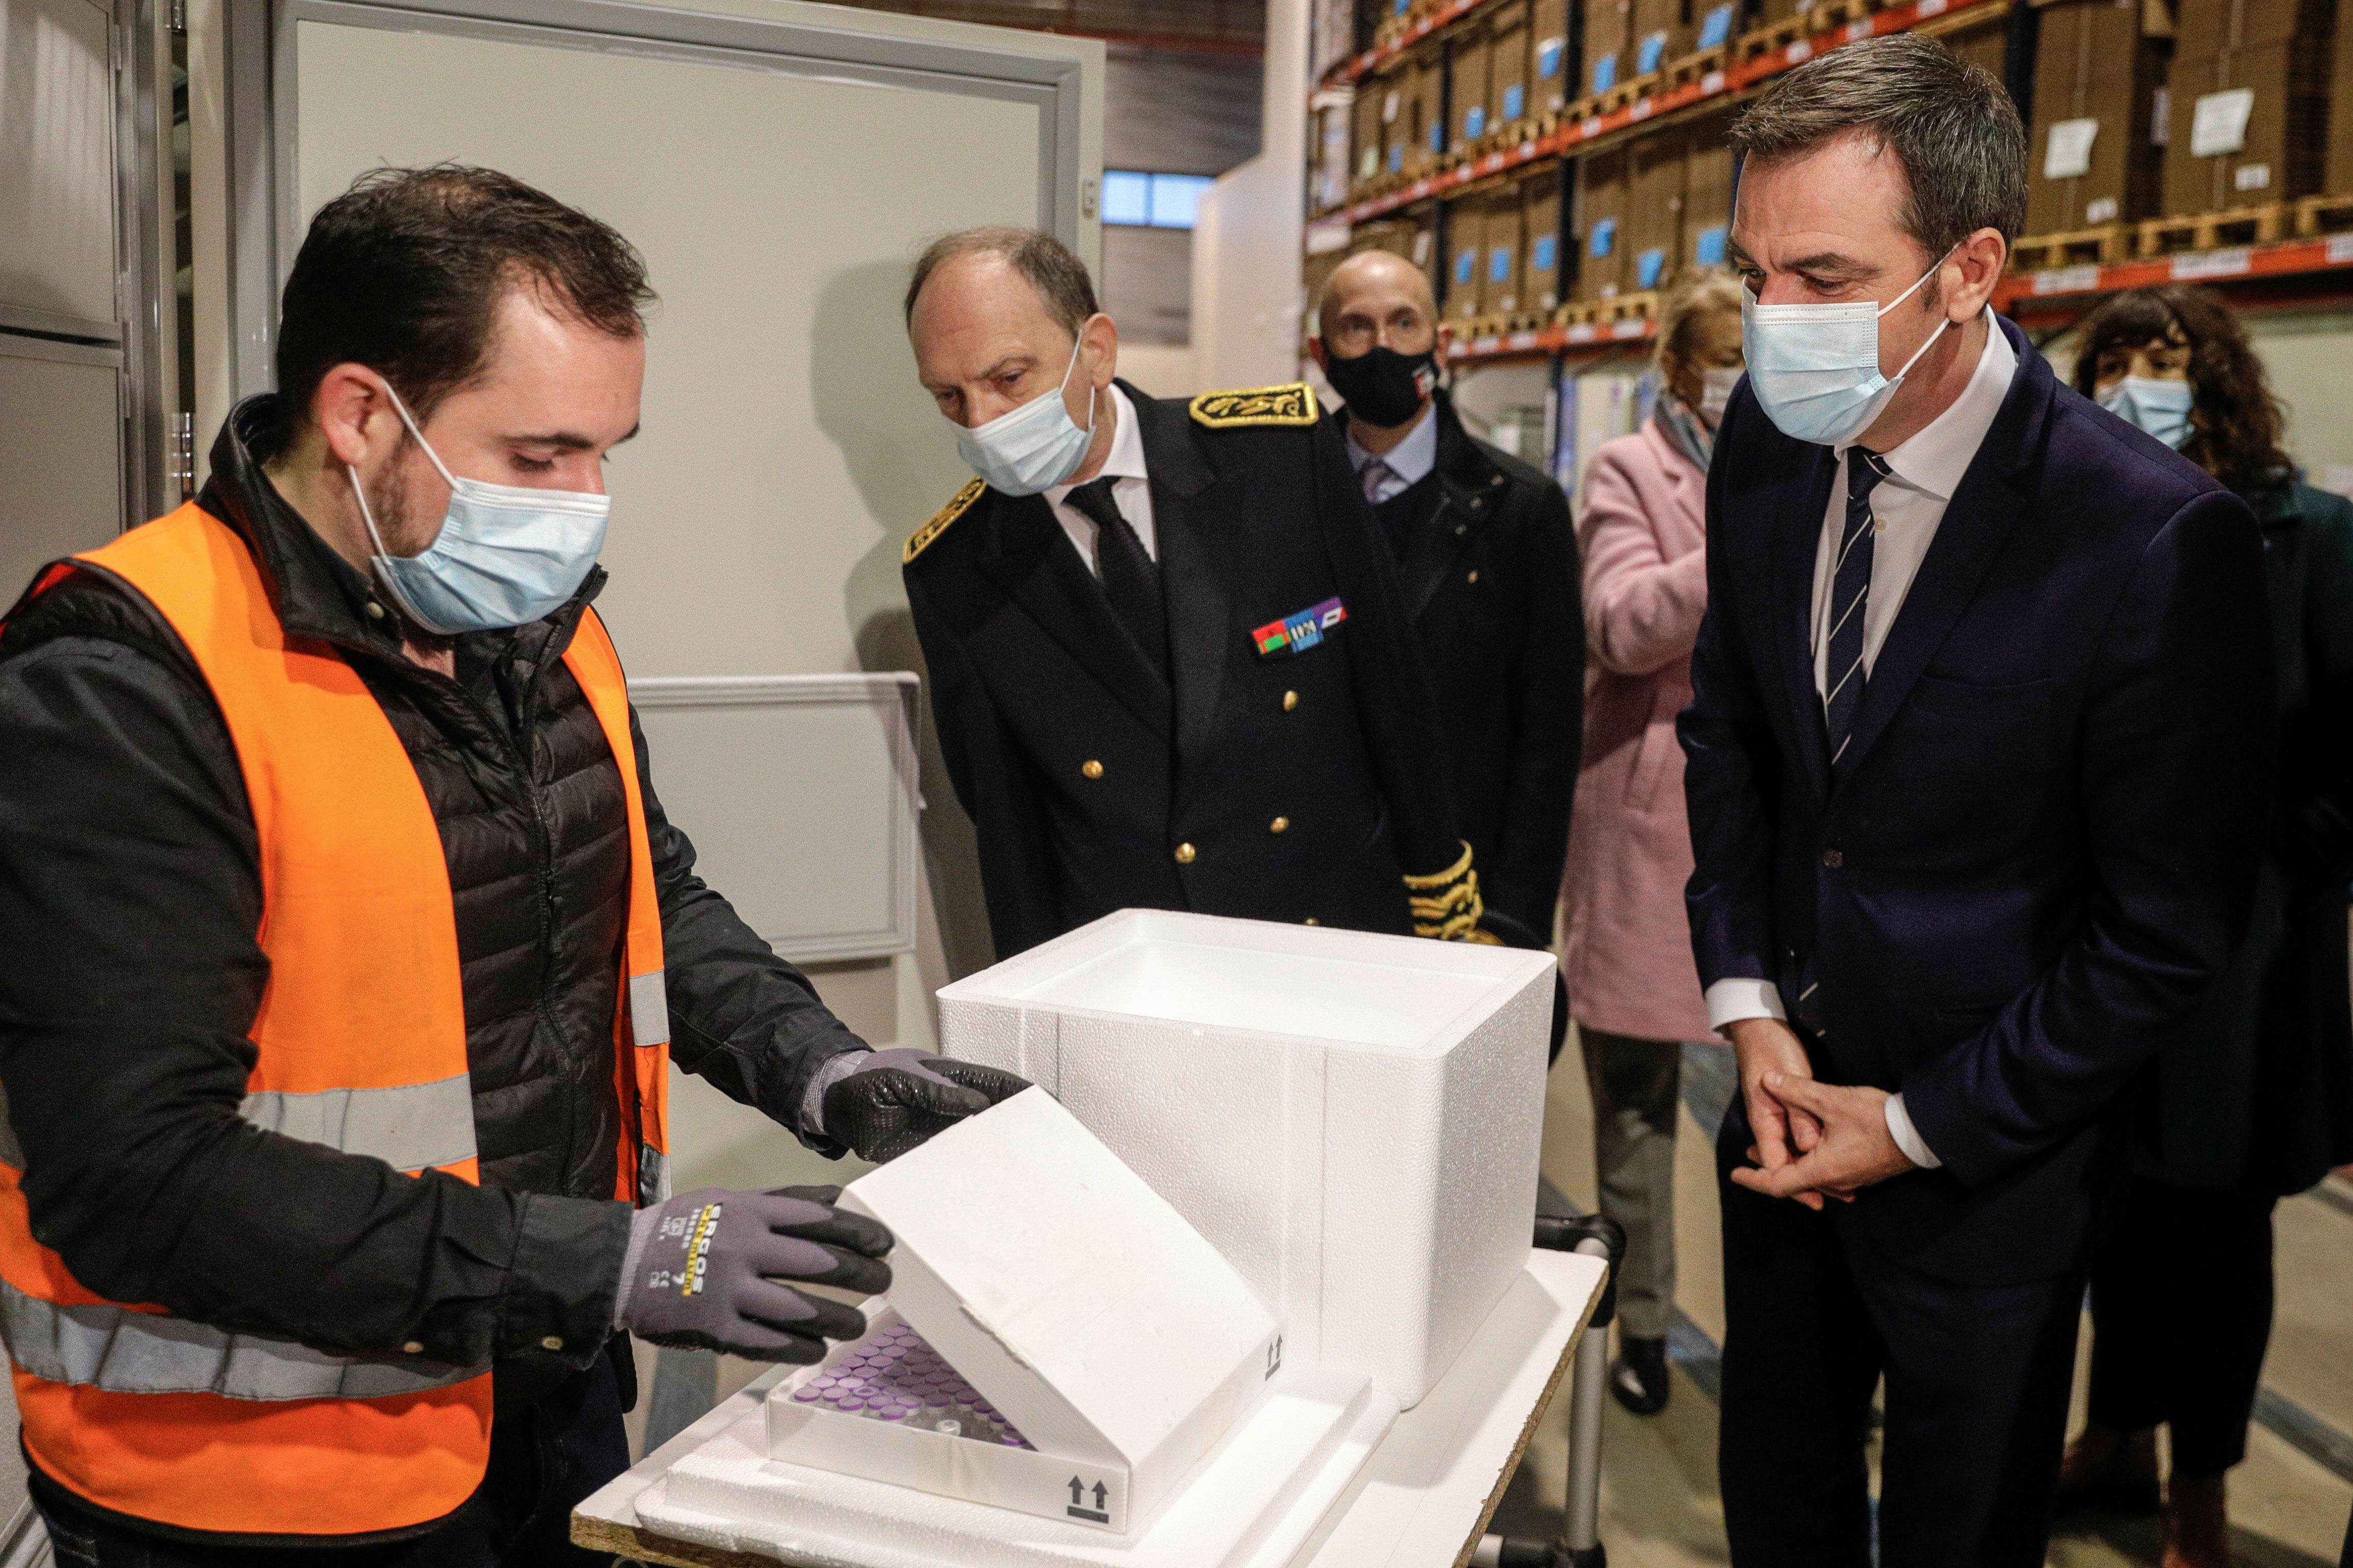 French Health Minister Olivier Véran, right, looks at a box containing the Pfizer/BioNTech Covid-19 vaccine while visiting a distribution center in Chanteloup-en-Brie, France, on December 22.